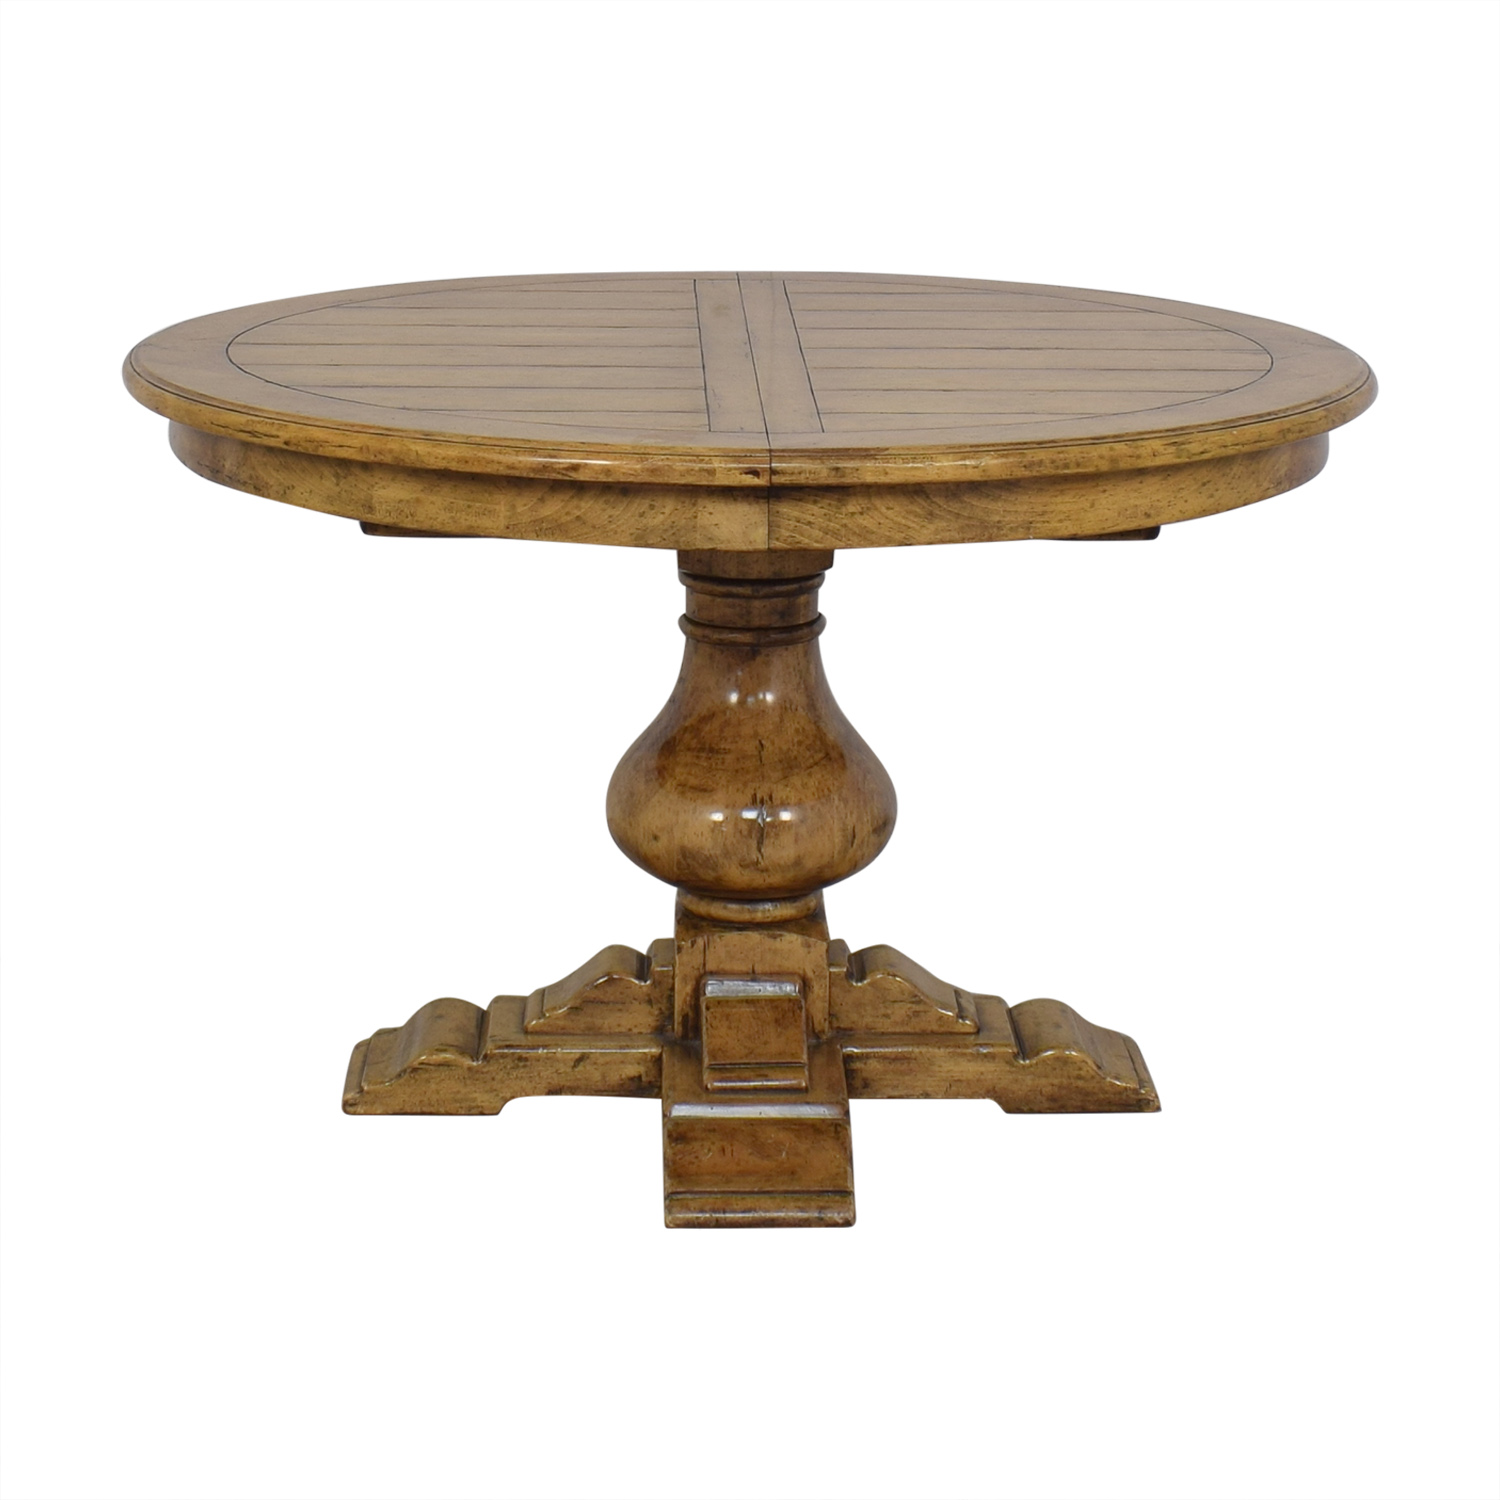 Bausman Bausman Round Table for sale